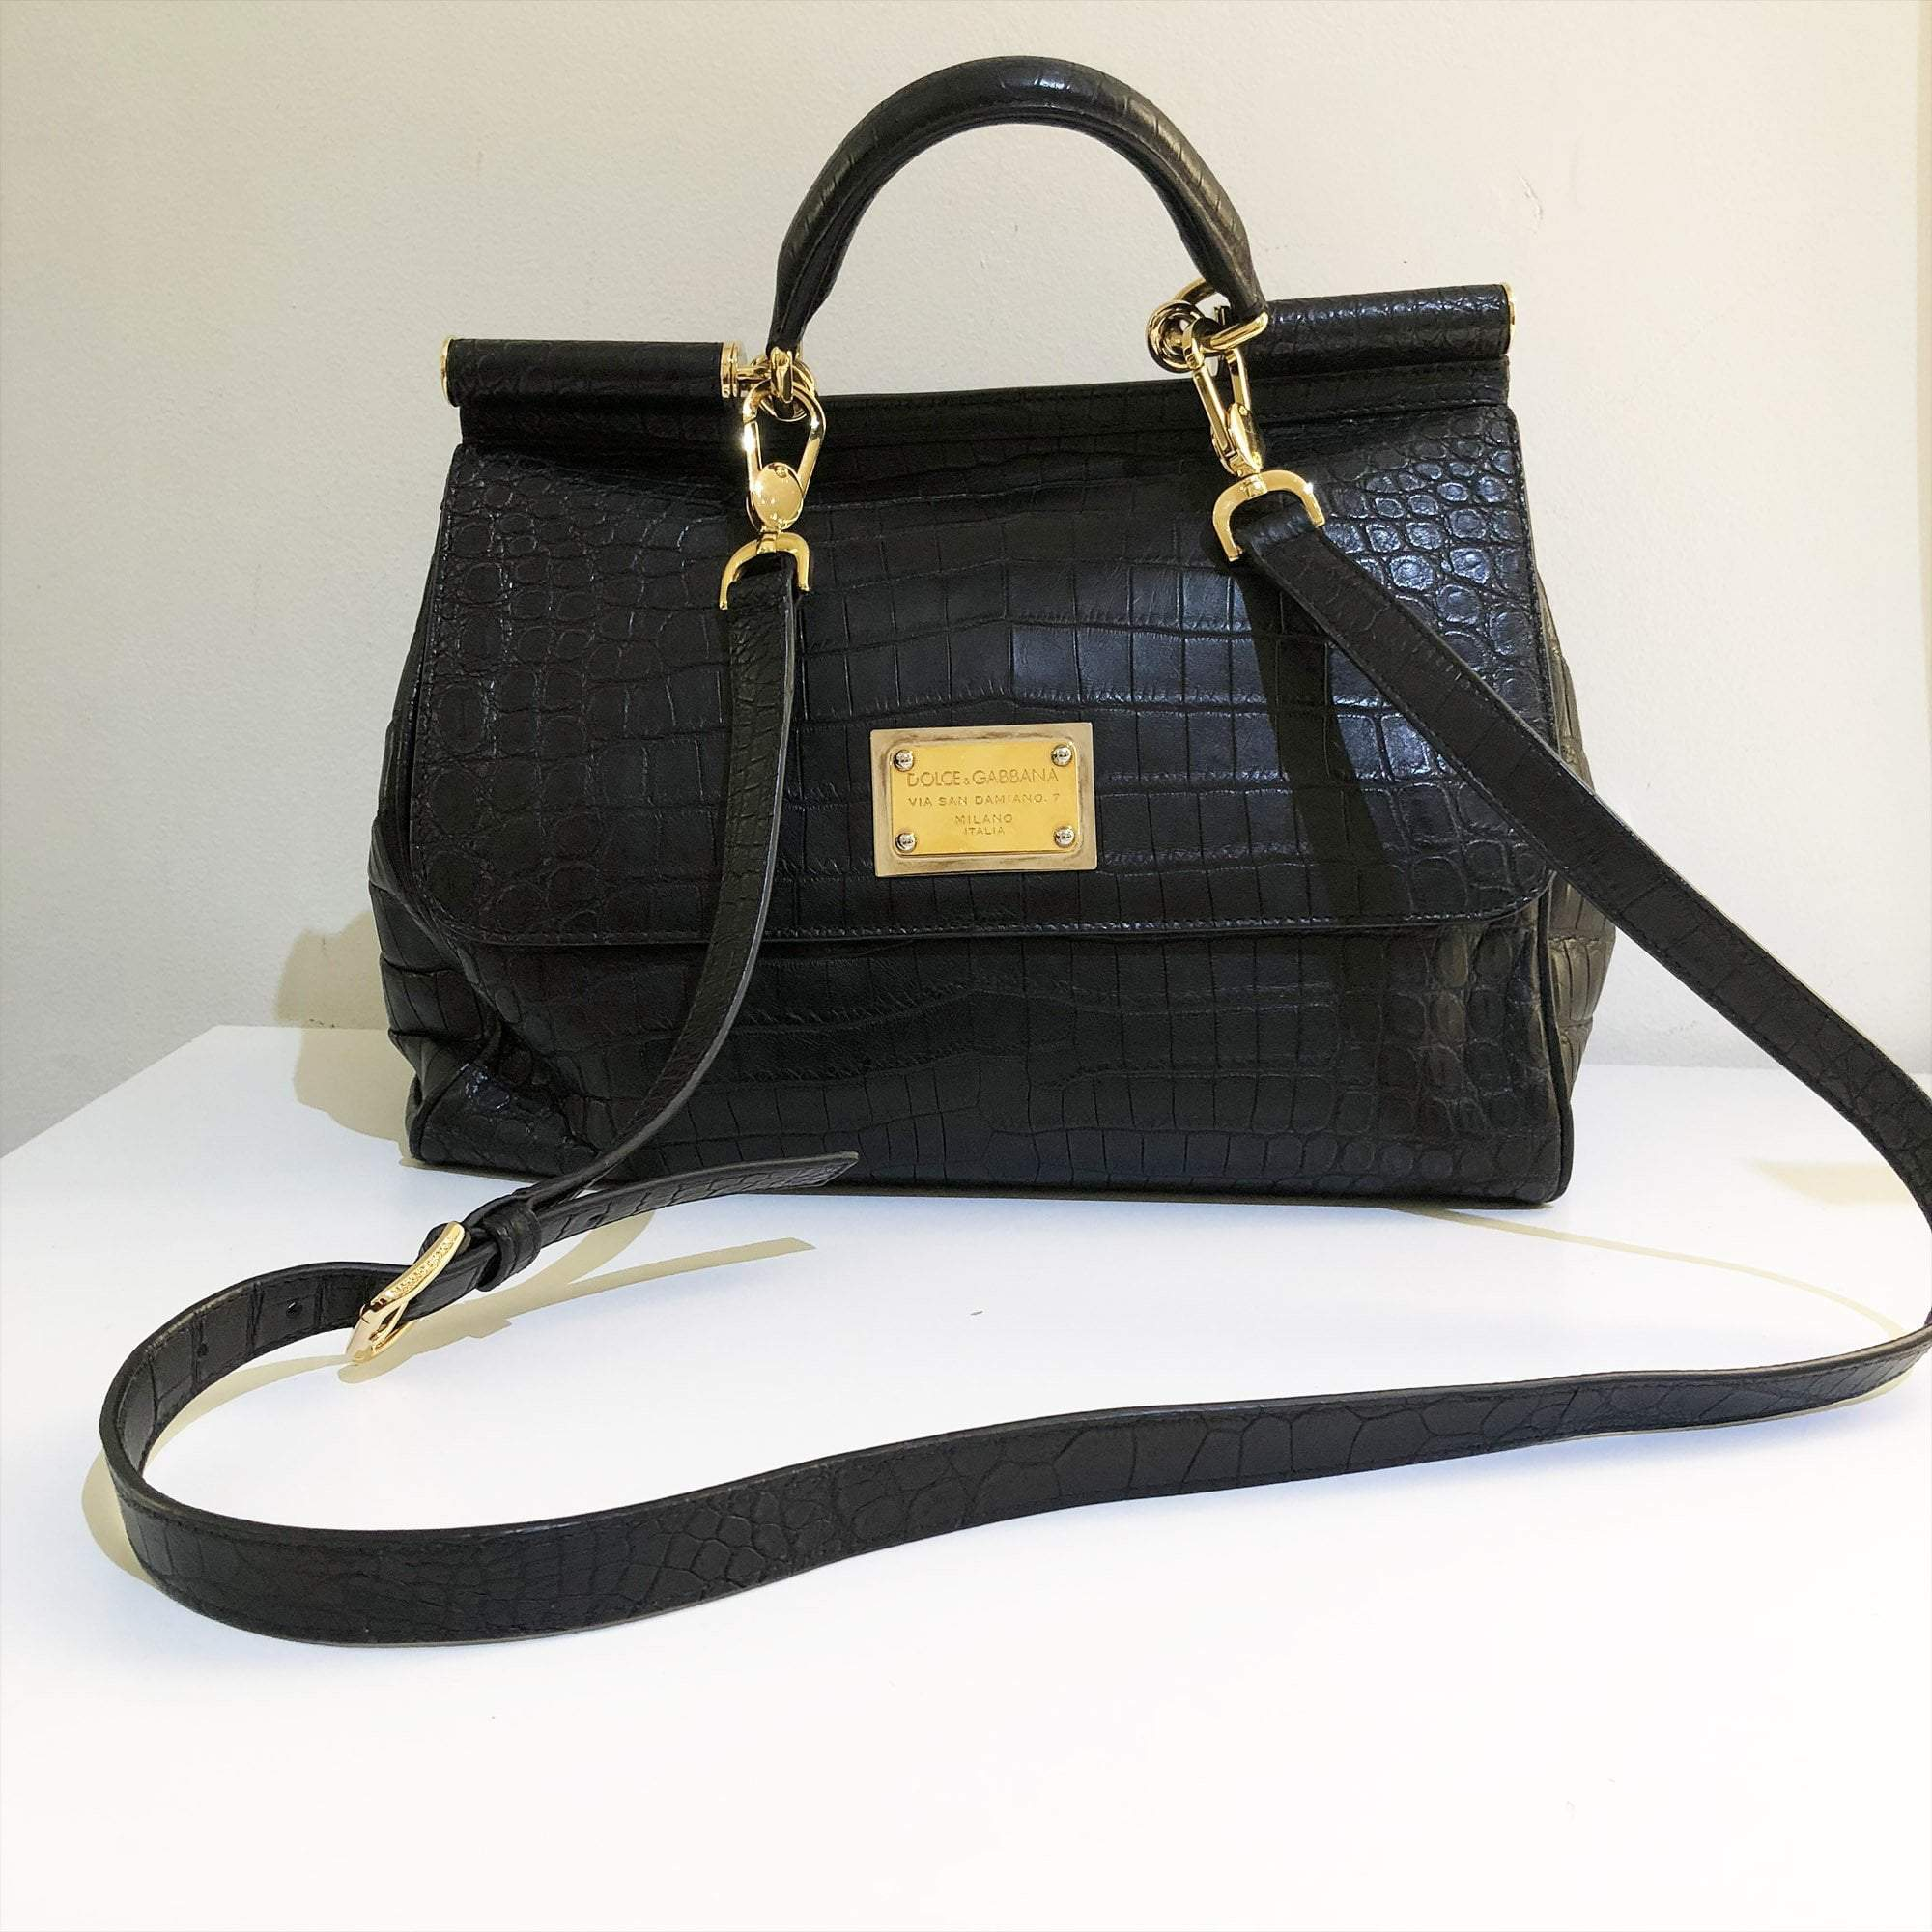 18402cda26 Dolce   Gabbana Black Crocodile Embossed Large Miss Sicily Tote